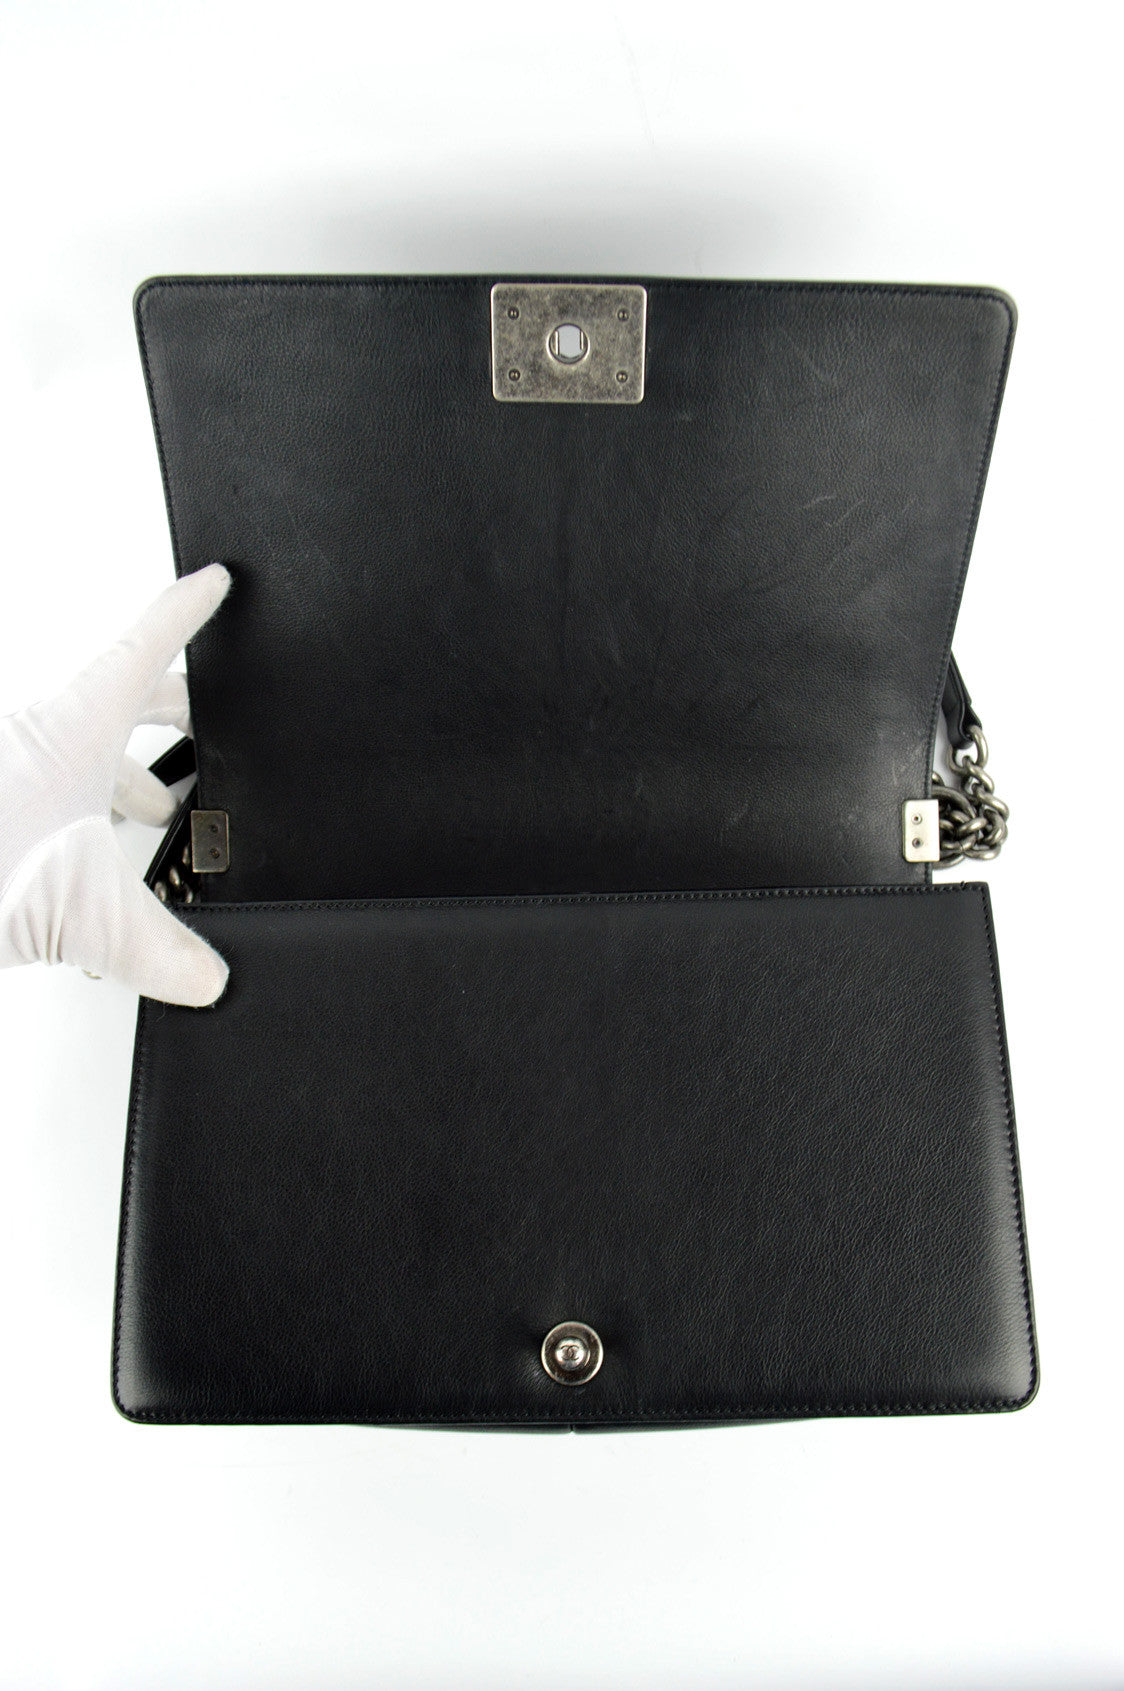 Black Calfskin New Medium Boy Bag RHW